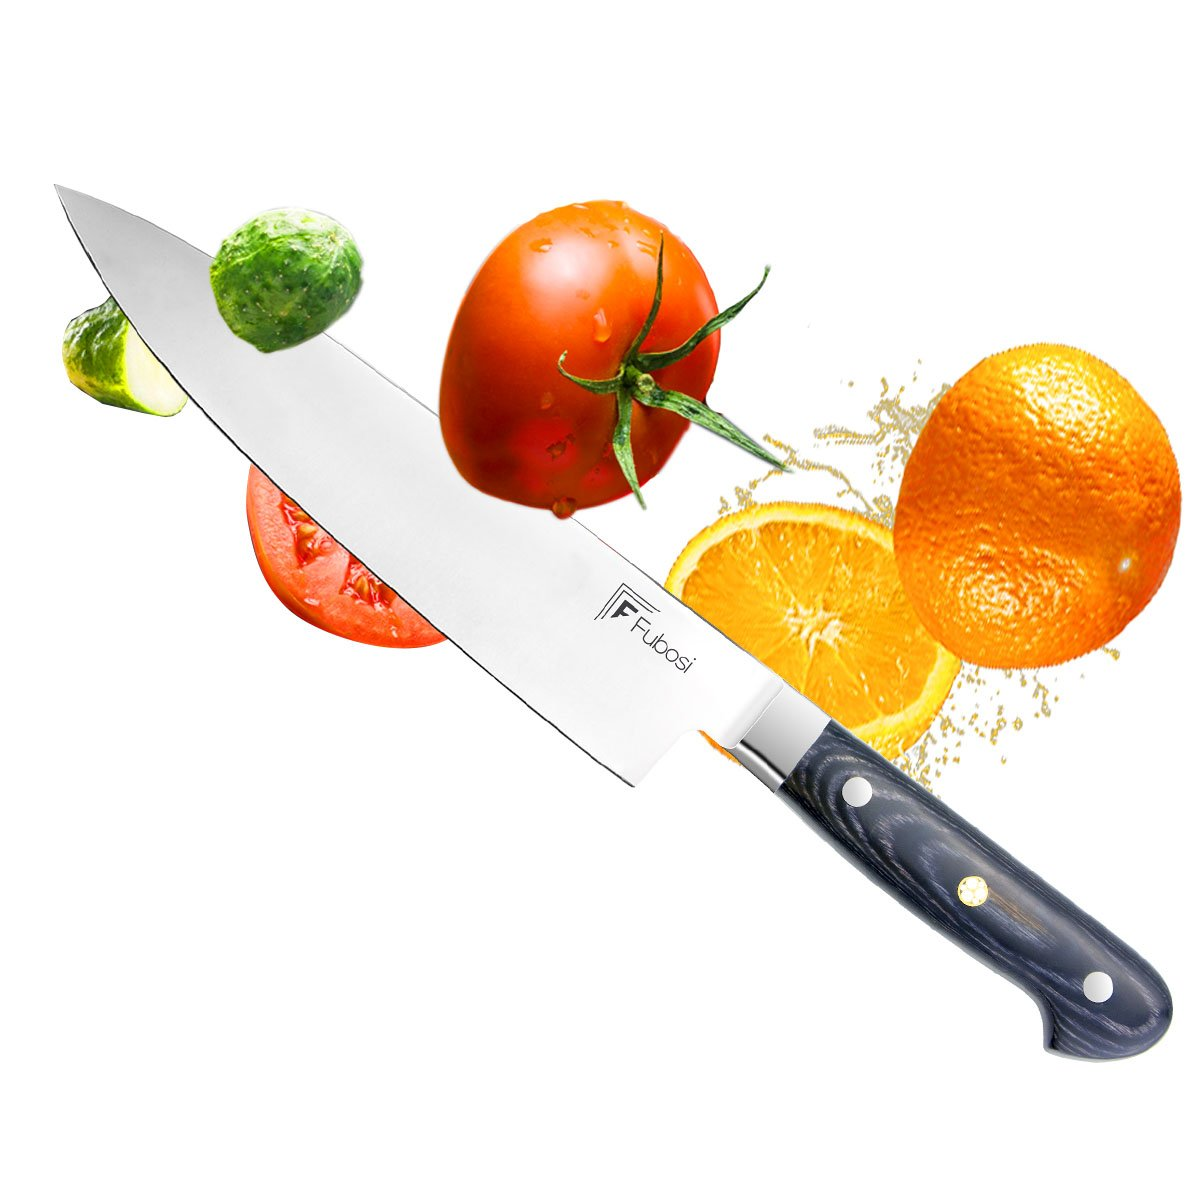 Chef Knife,Fubosi Chef's Knife 8 inches, Professional Kitchen Sharp Fruit Vegetable Knife, High Carbon Japanese Stainless Steel Gyutou Knives With Ergonomic Handle for Home Kitchen and Restaurant